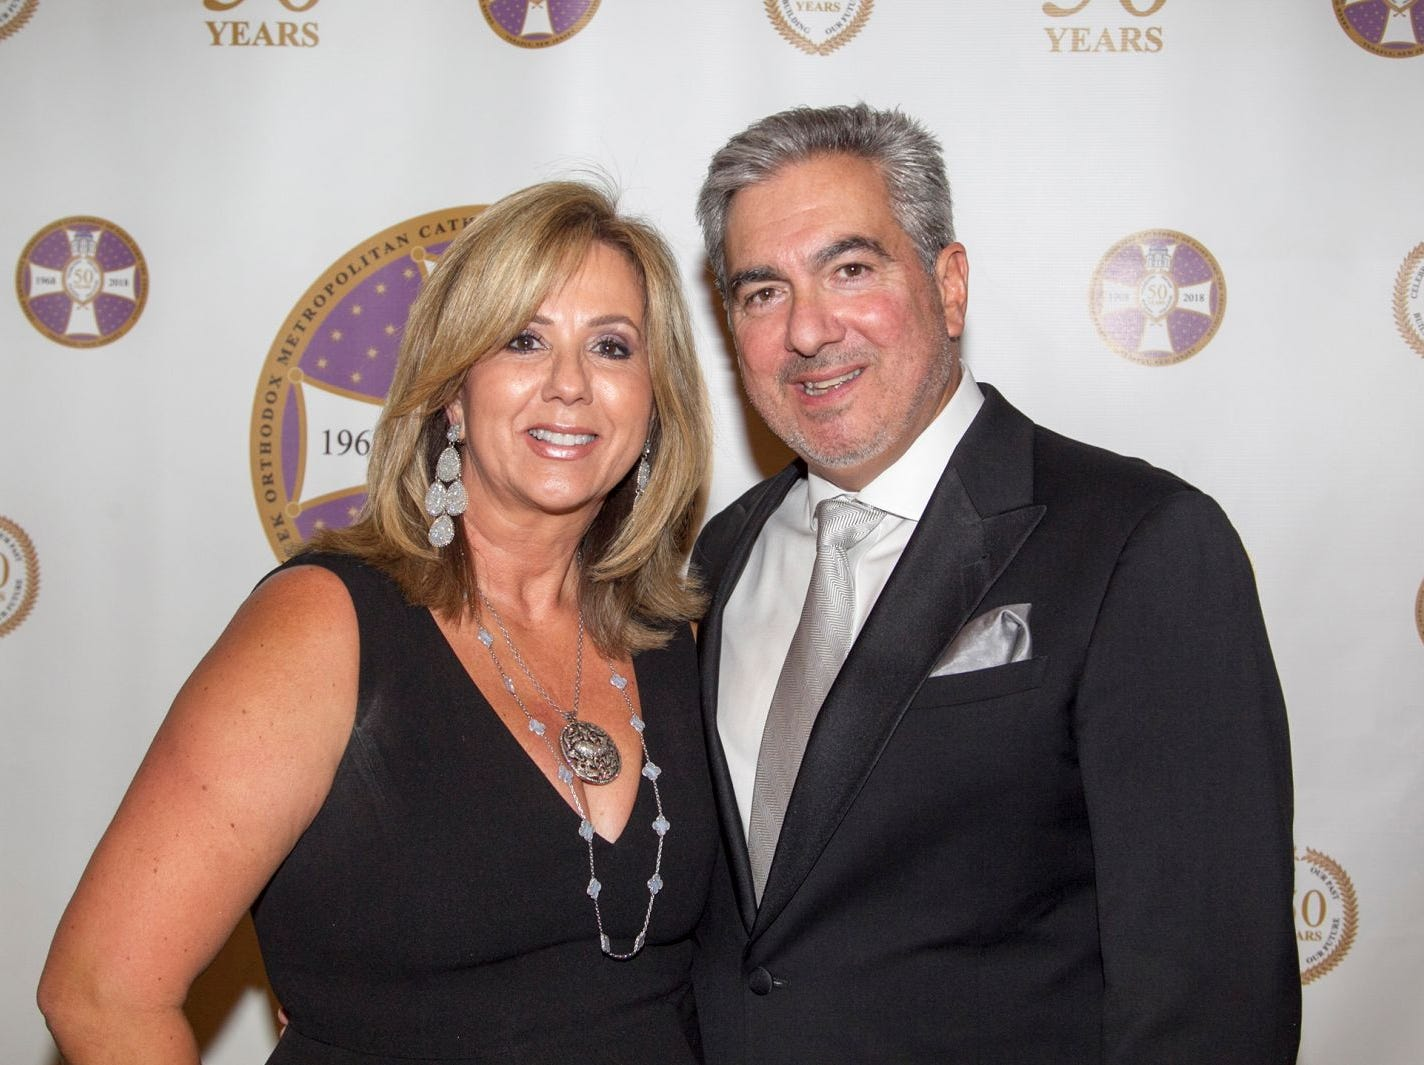 Sandy and Chris Tsamutlis. Saint John the Theologian 50th Anniversary gala Dinner at The Venetian in Garfield. 10/04/2018